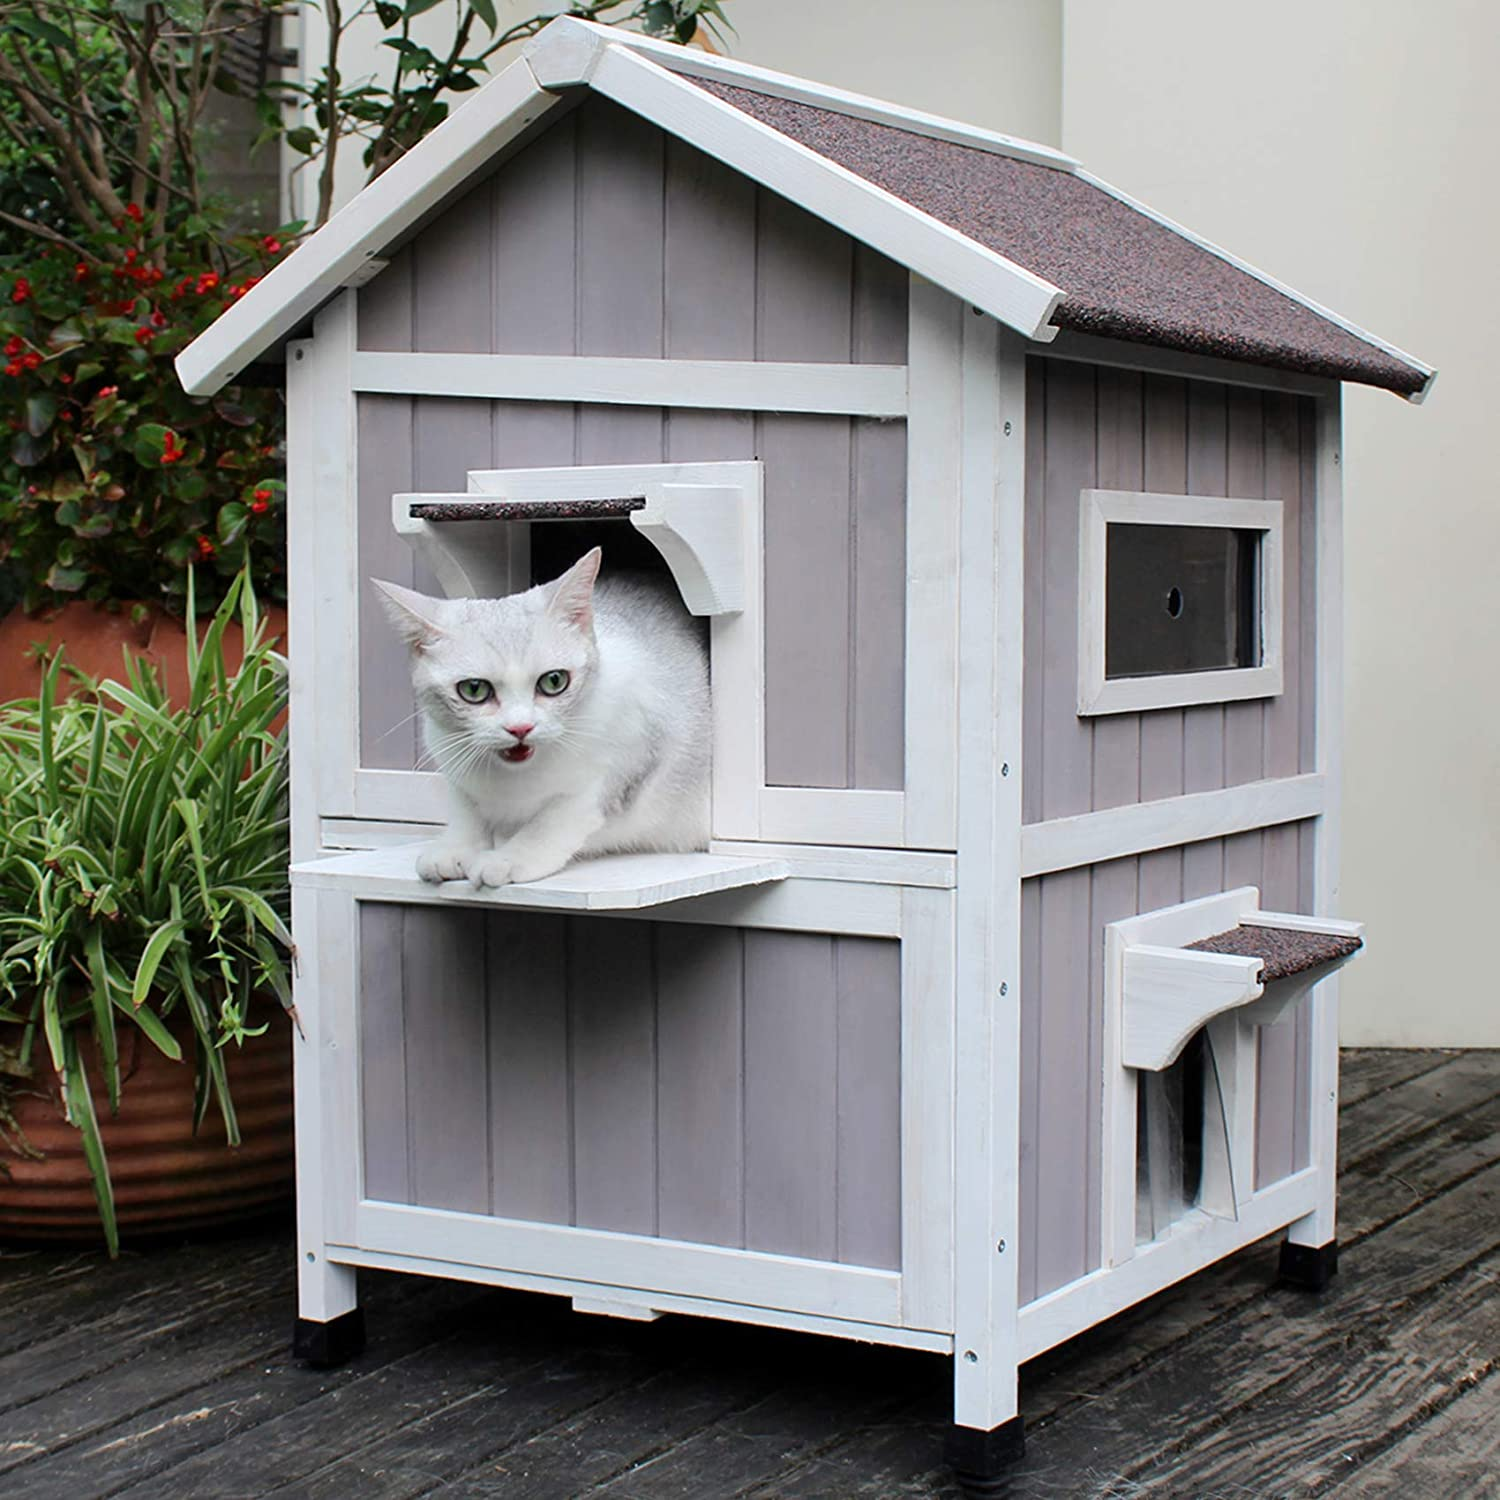 Hicaptain Outdoor Cat House Feral Cat Shelter Escape Door Waterproof Insulated Two Story Pet Supplies